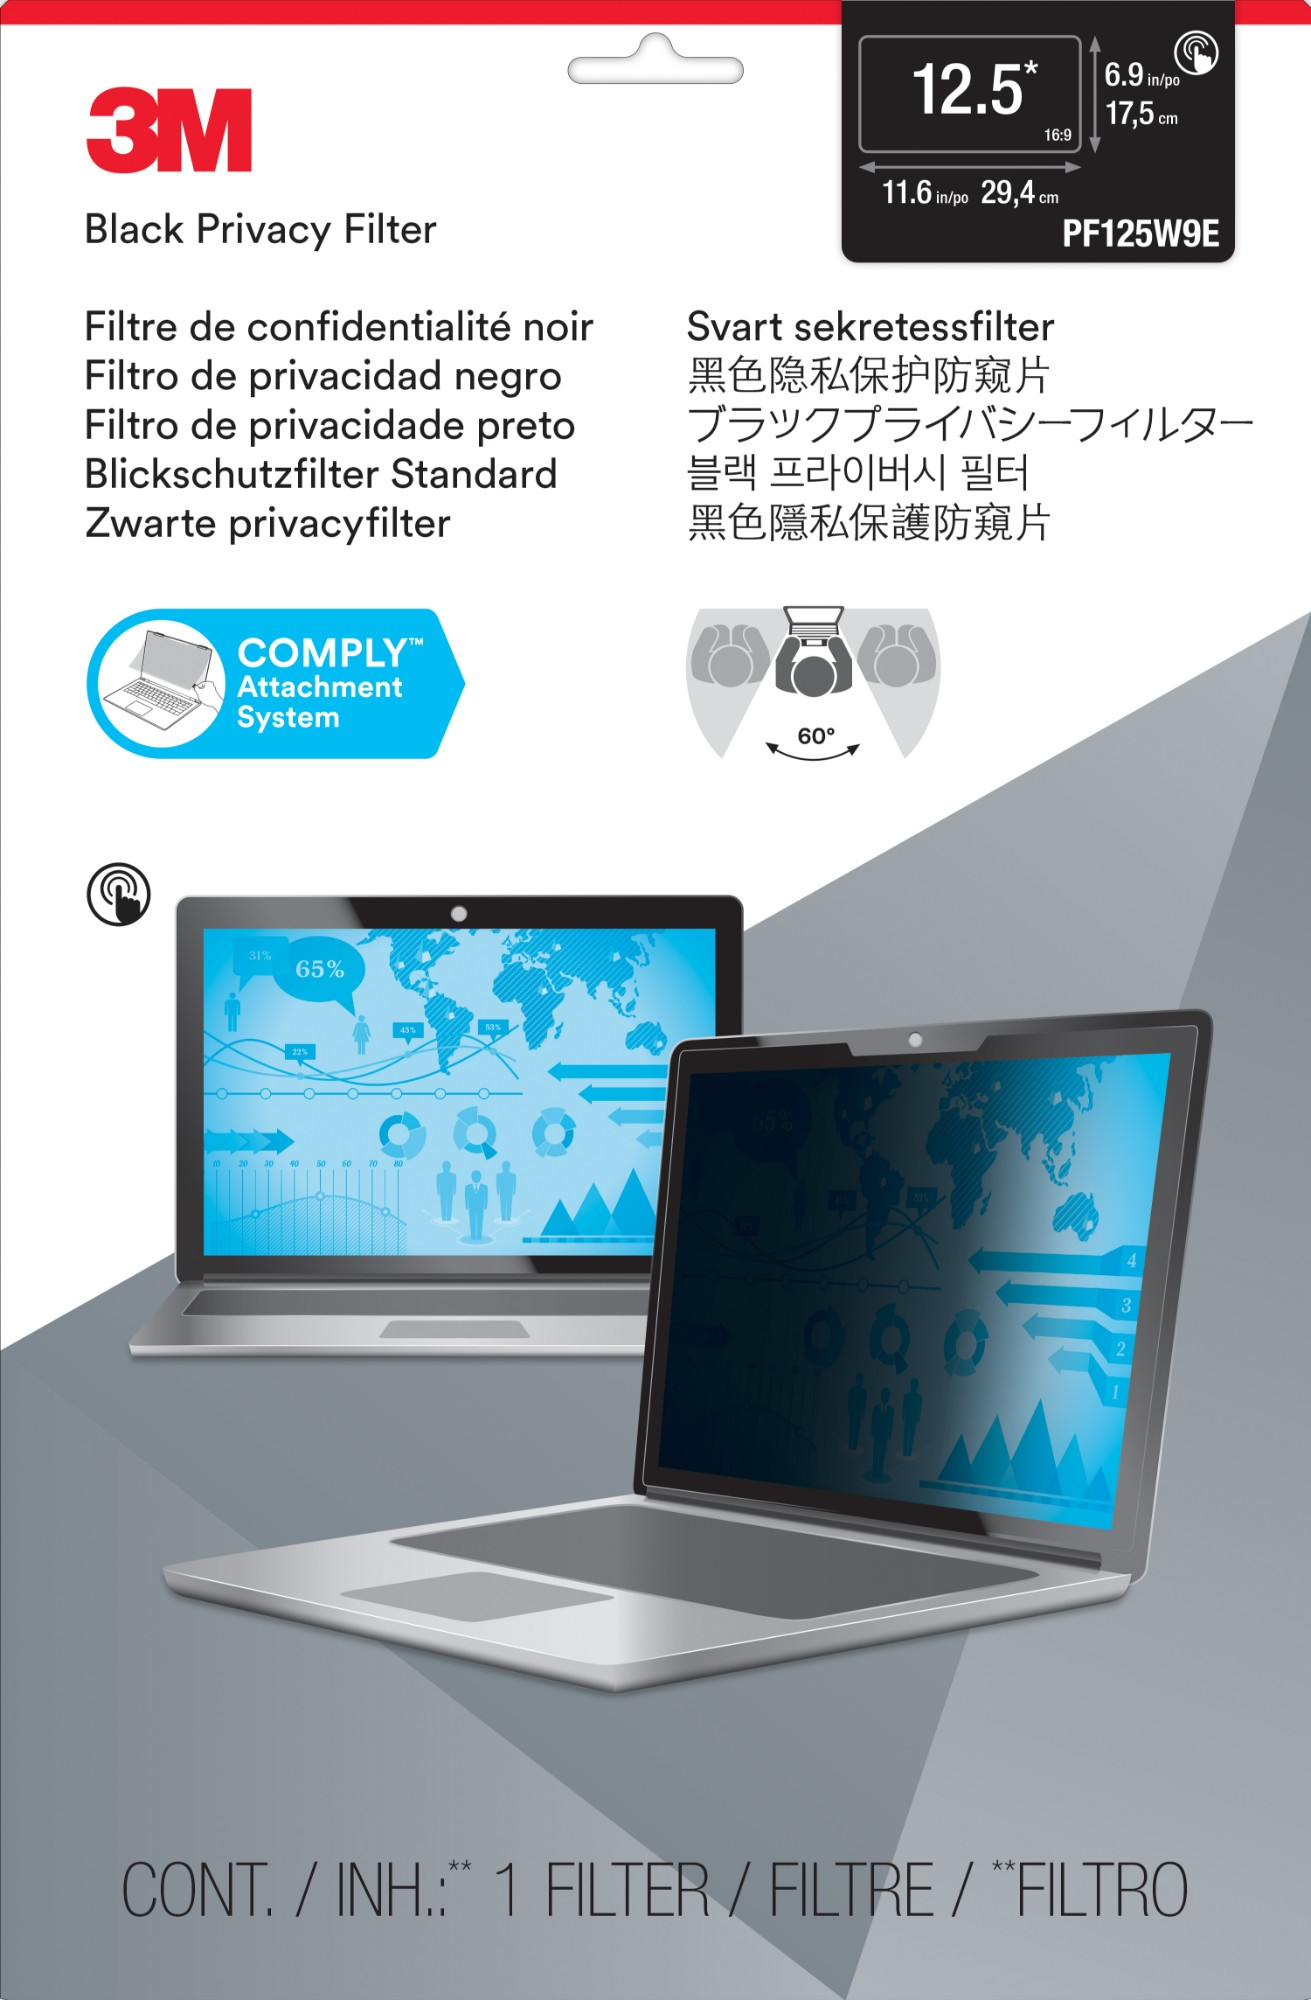 Privacy Flt 12.5in Ws 16:9 Edge Tch Lapt